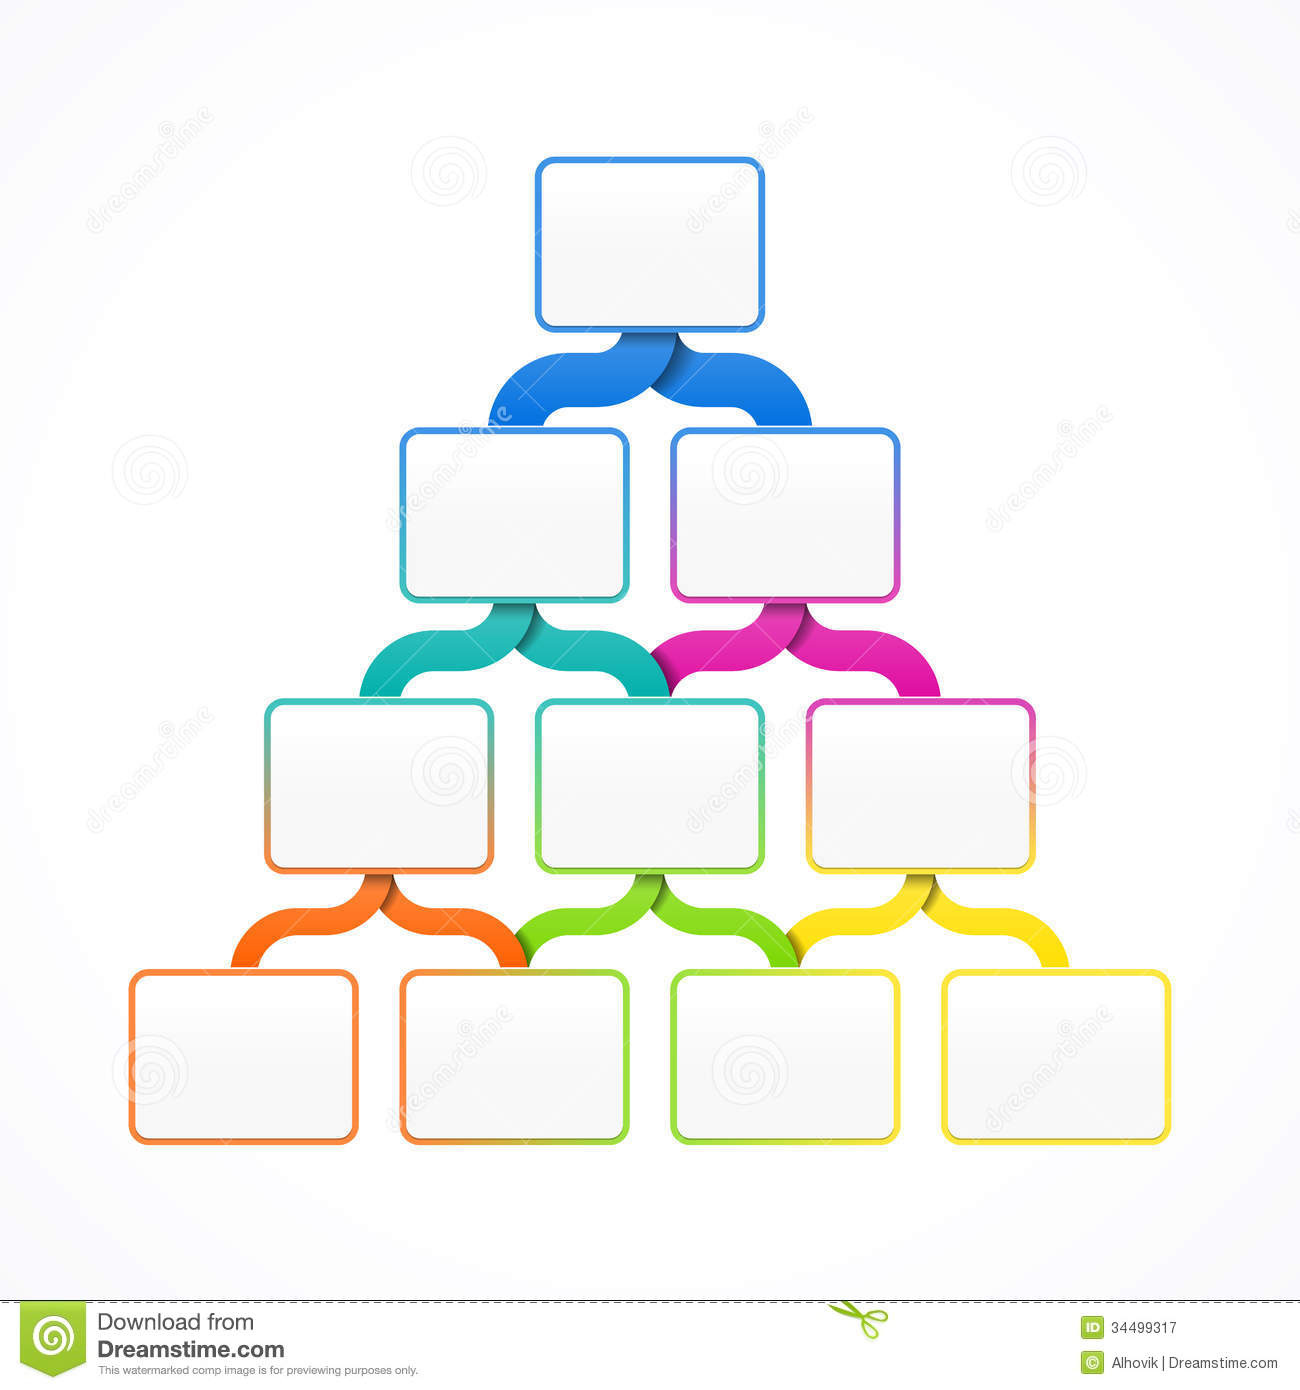 Pyramid hierarchy template for design, infographics or presentation.